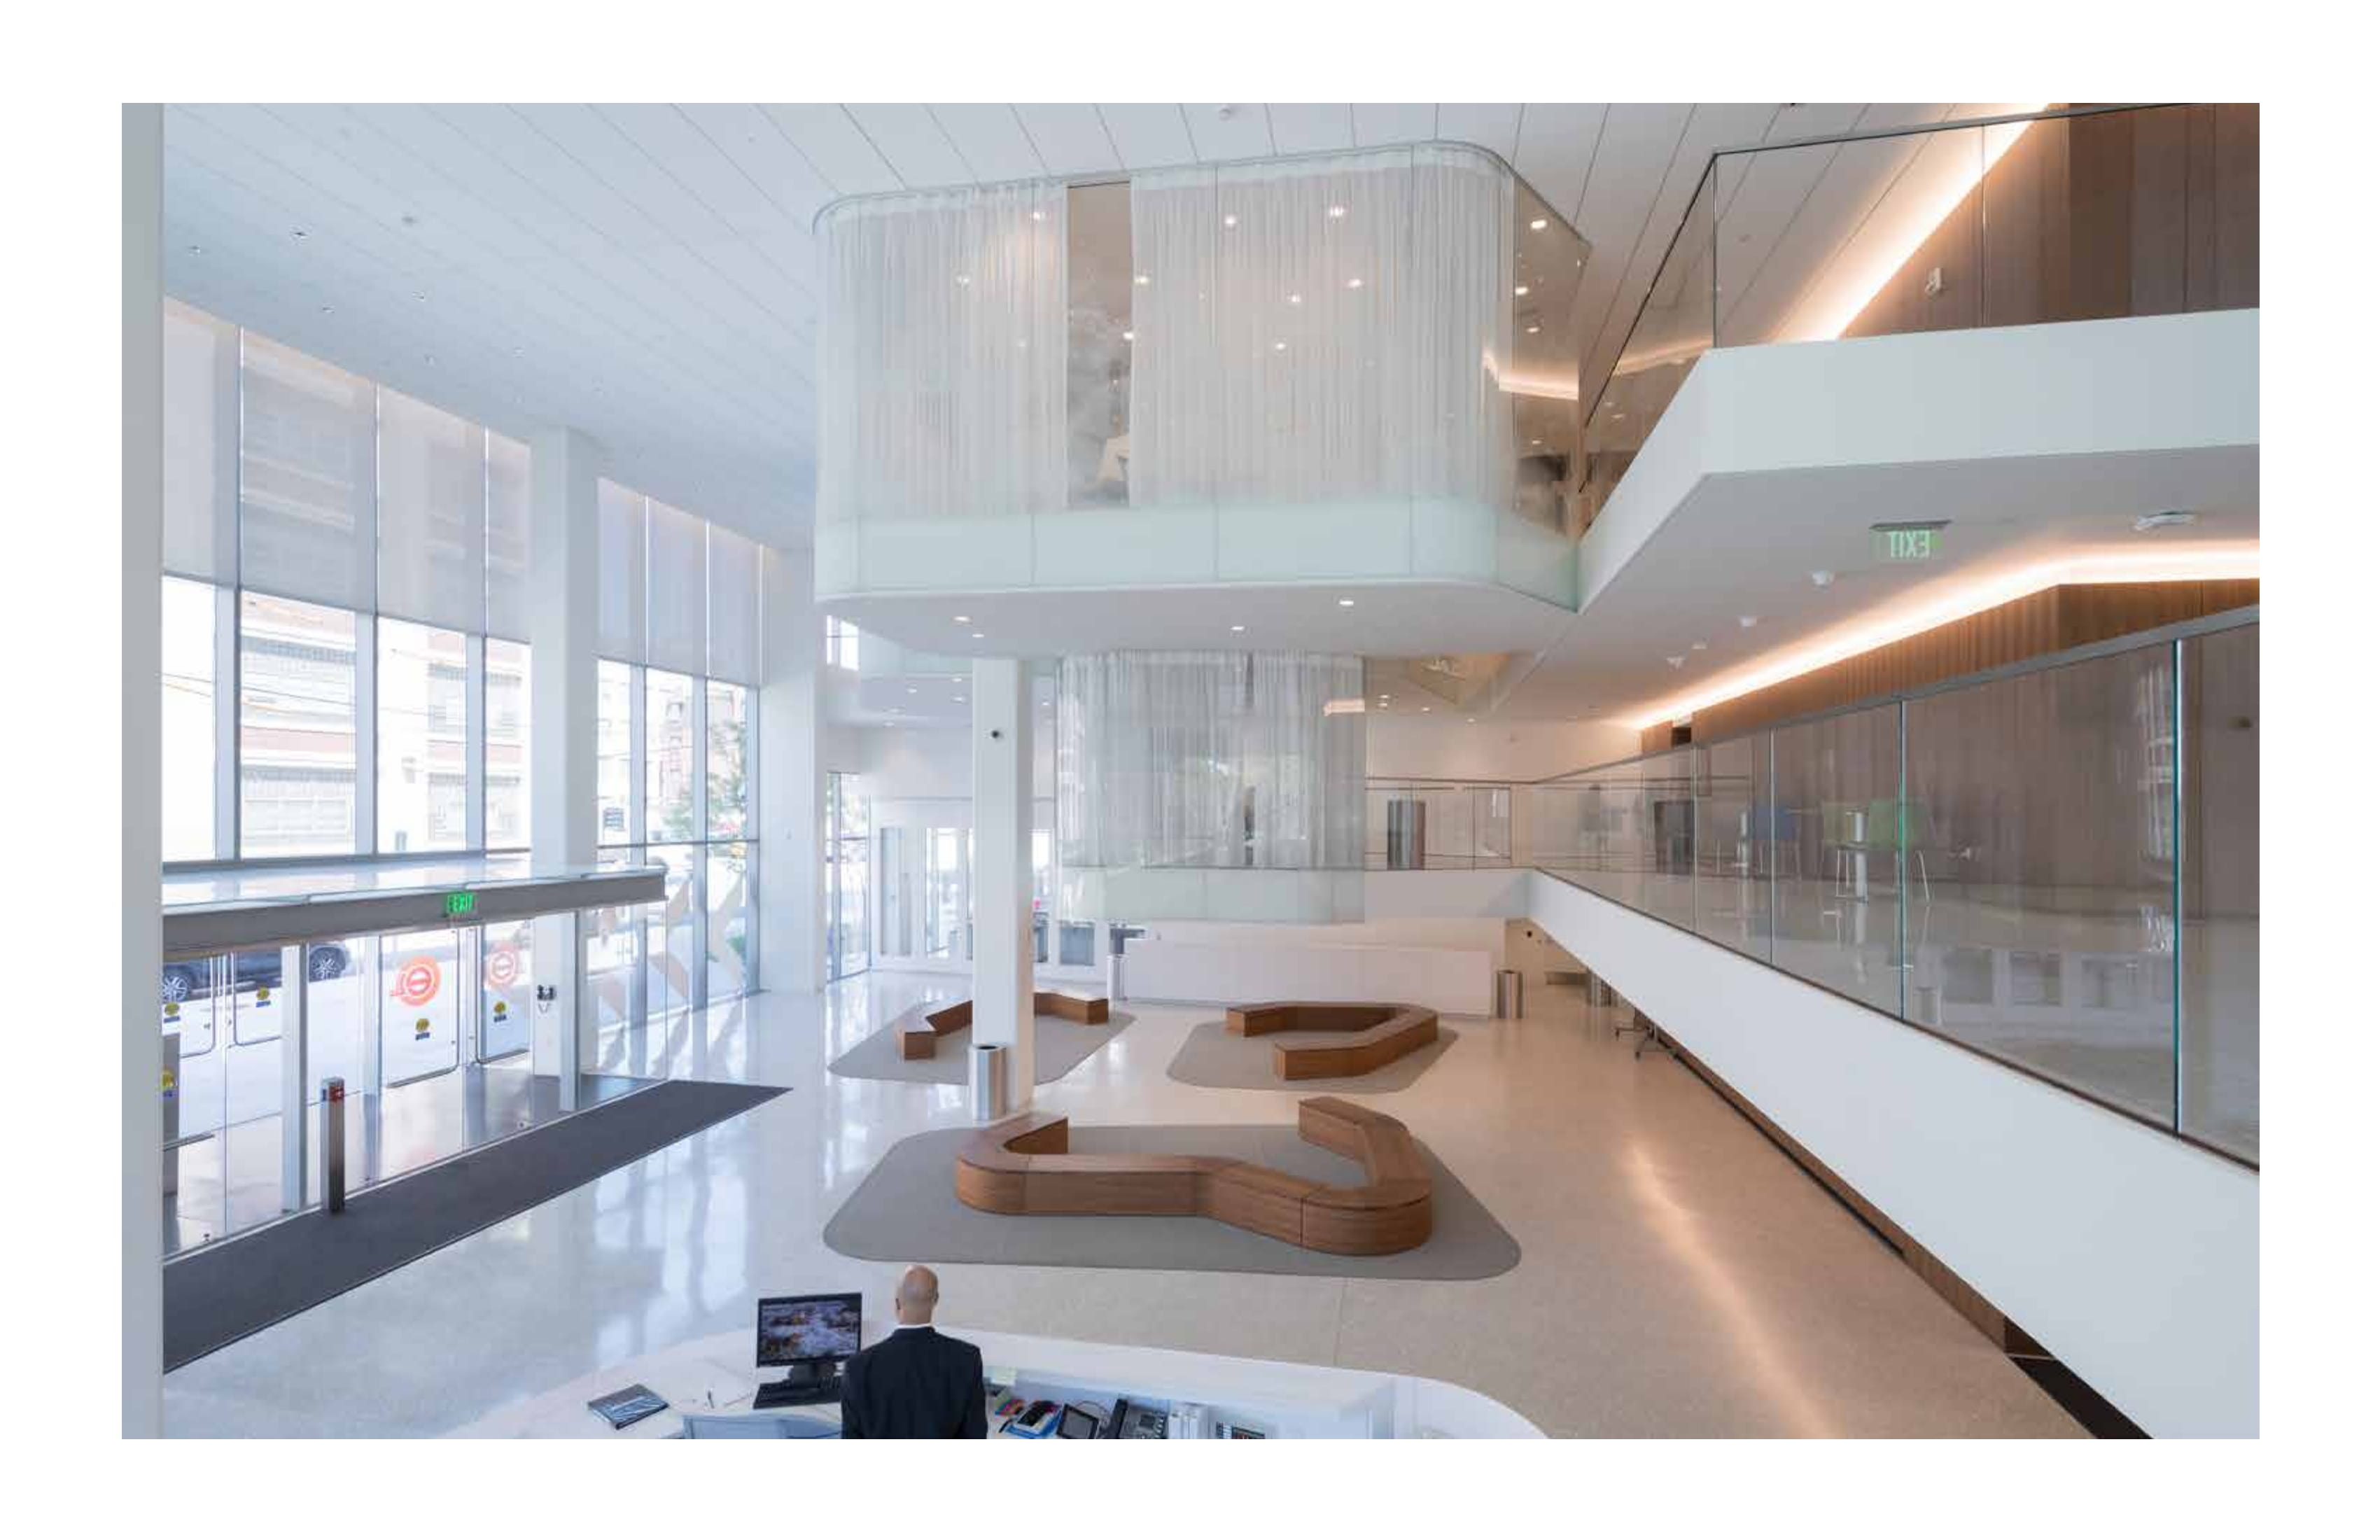 View of lobby with hanging conference rooms Iwan Baan